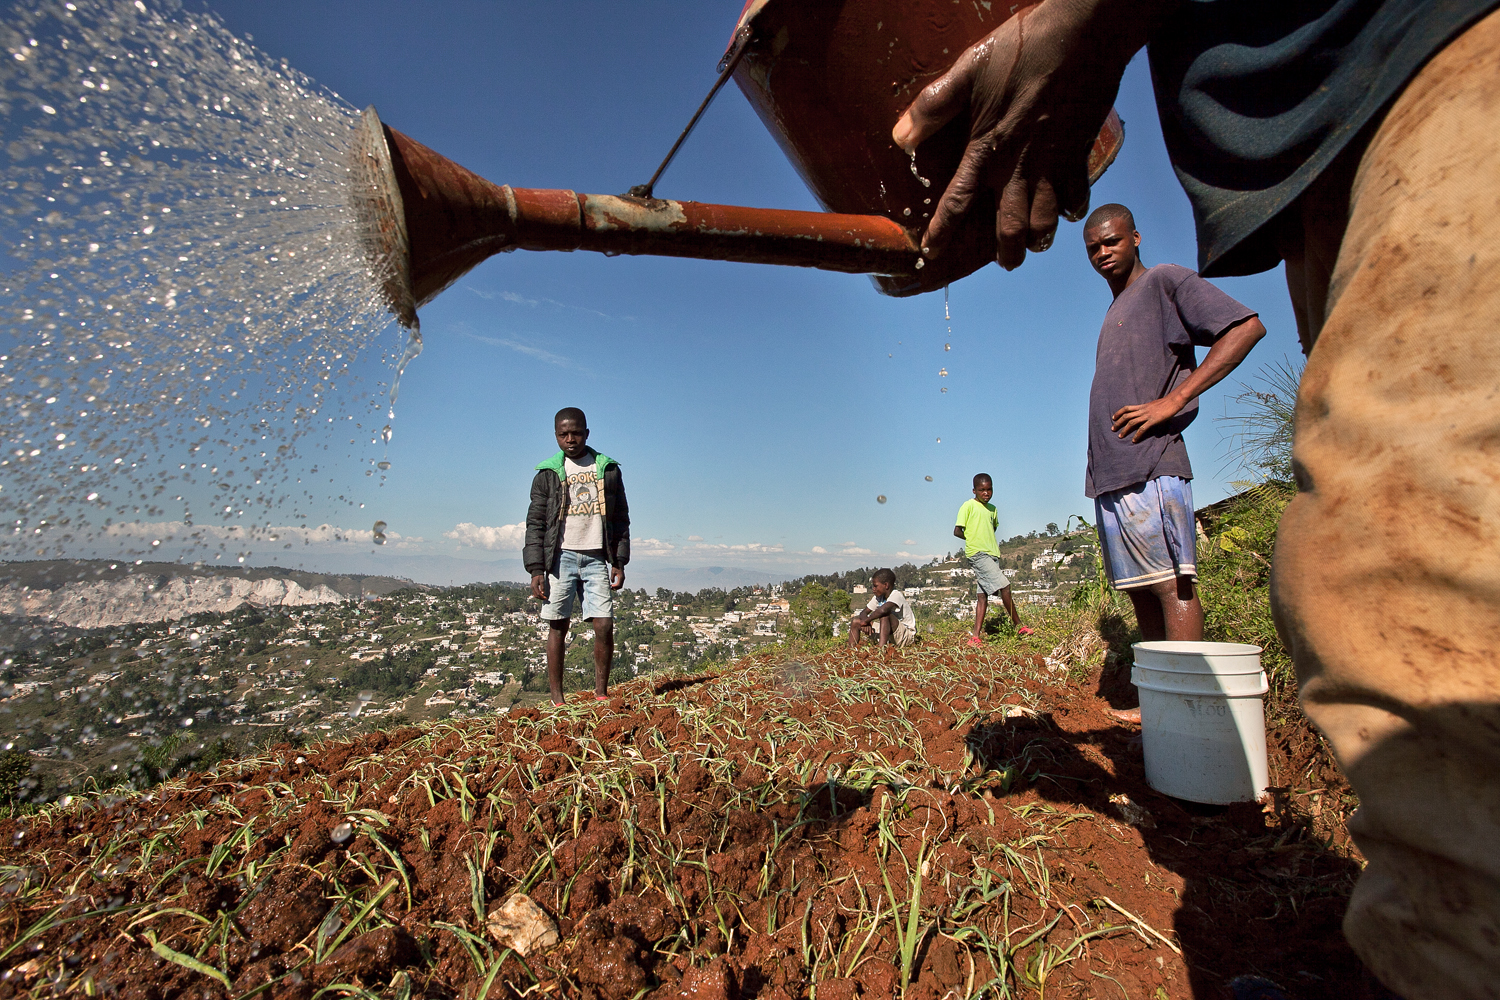 After delivering water by hand, farmers in Gramothe nurture crops that include onion, leek, sweet potato and cabbage. Yearly increases in the harvest have bolstered nutrition in the community, as well as incomes.